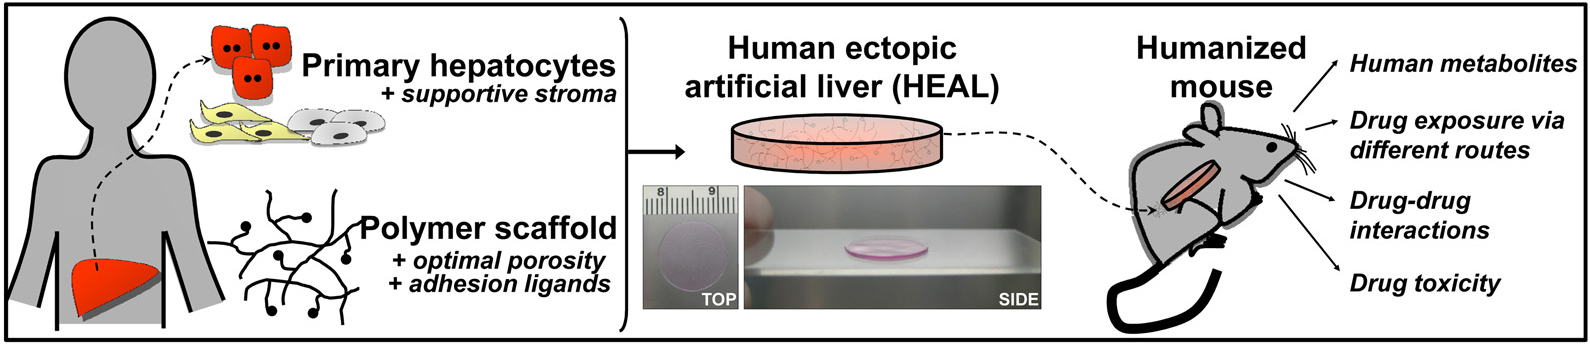 "Liver cells from a human donor (primary hepatocytes), human endothelial cells, and mouse fibroblasts are encapsulated together in a polymer skeleton and then implanted in a mouse. The implant forms a so-called human ectopic artificial liver (HEAL). Mice with HEALs are ""humanized"" because they harbor a human liver in addition to their own liver. HEALs provide insight into human biology, predicting how new drugs might behave in humans. (Figure adapted from PNAS. 2011;108(29):11842–7.)"